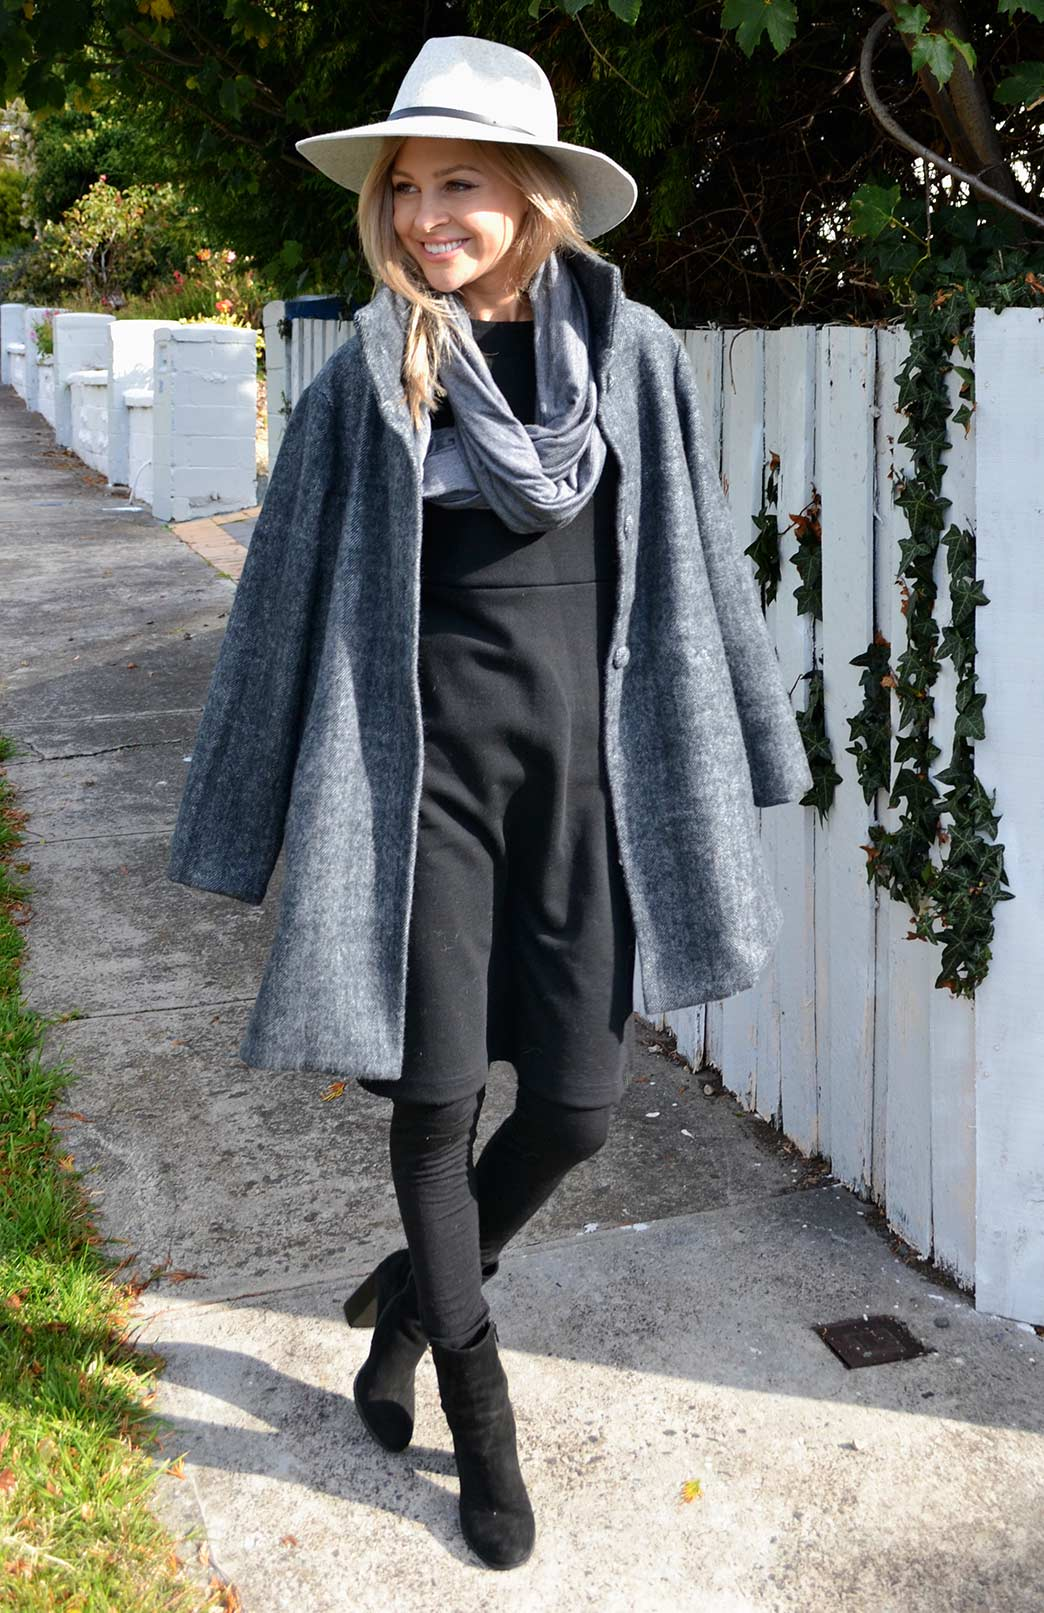 Long Coat - Herringbone - Women's Herringbone Superfine Merino Wool Long Winter Coat with buttons and pockets - Smitten Merino Tasmania Australia